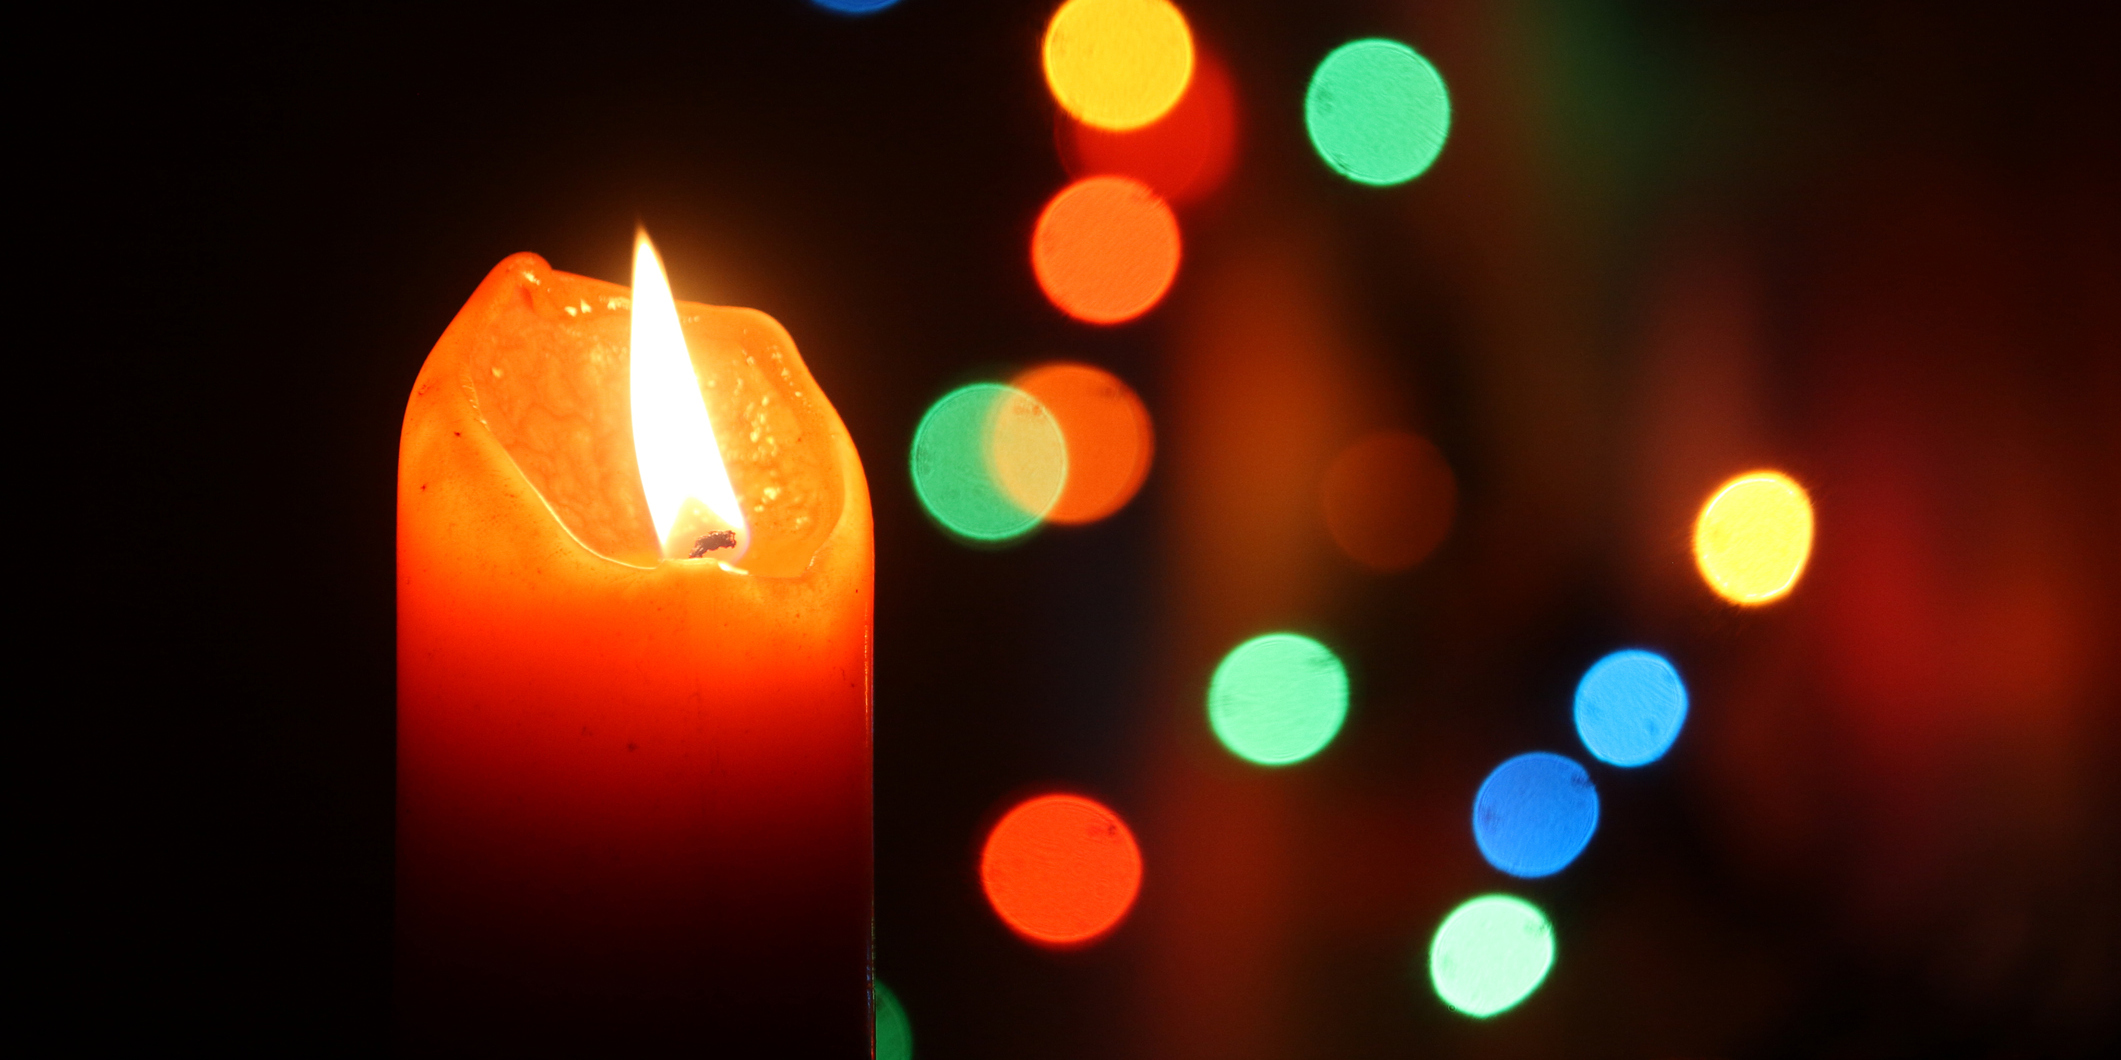 Simple Memorial Service Ideas for the Holidays